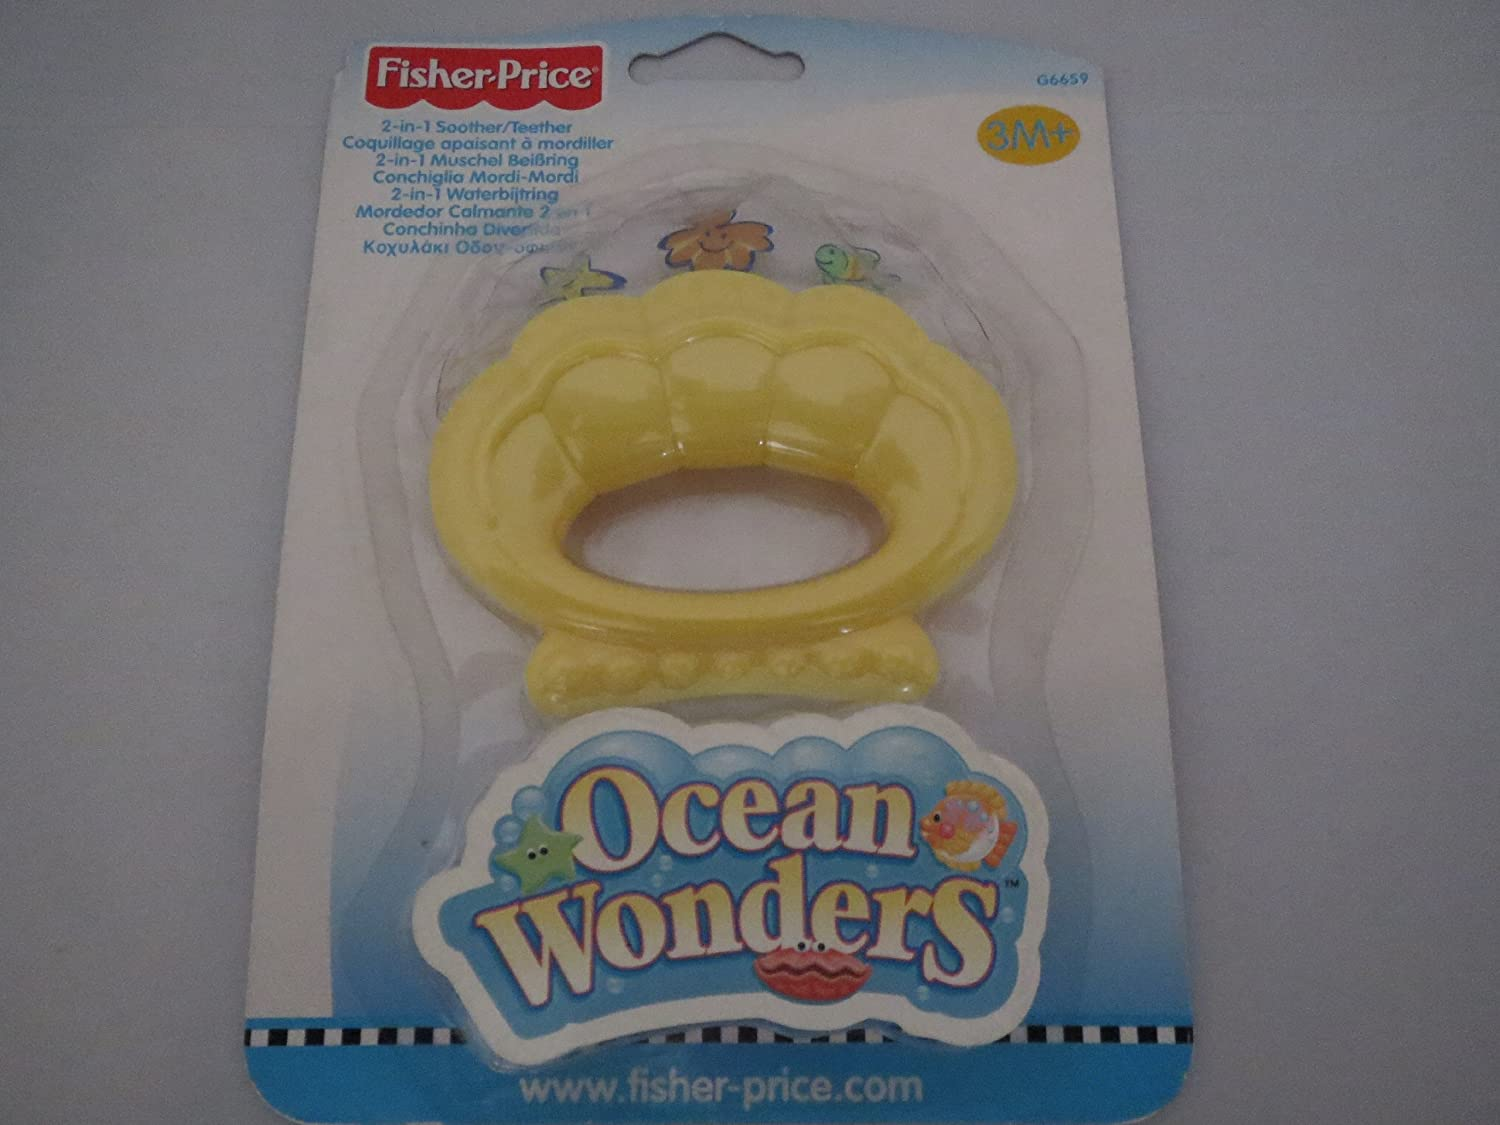 Fisher Price Ocean Wonders 2-in-1 Soother/Teether by Fisher-Price   B000TLV5VI